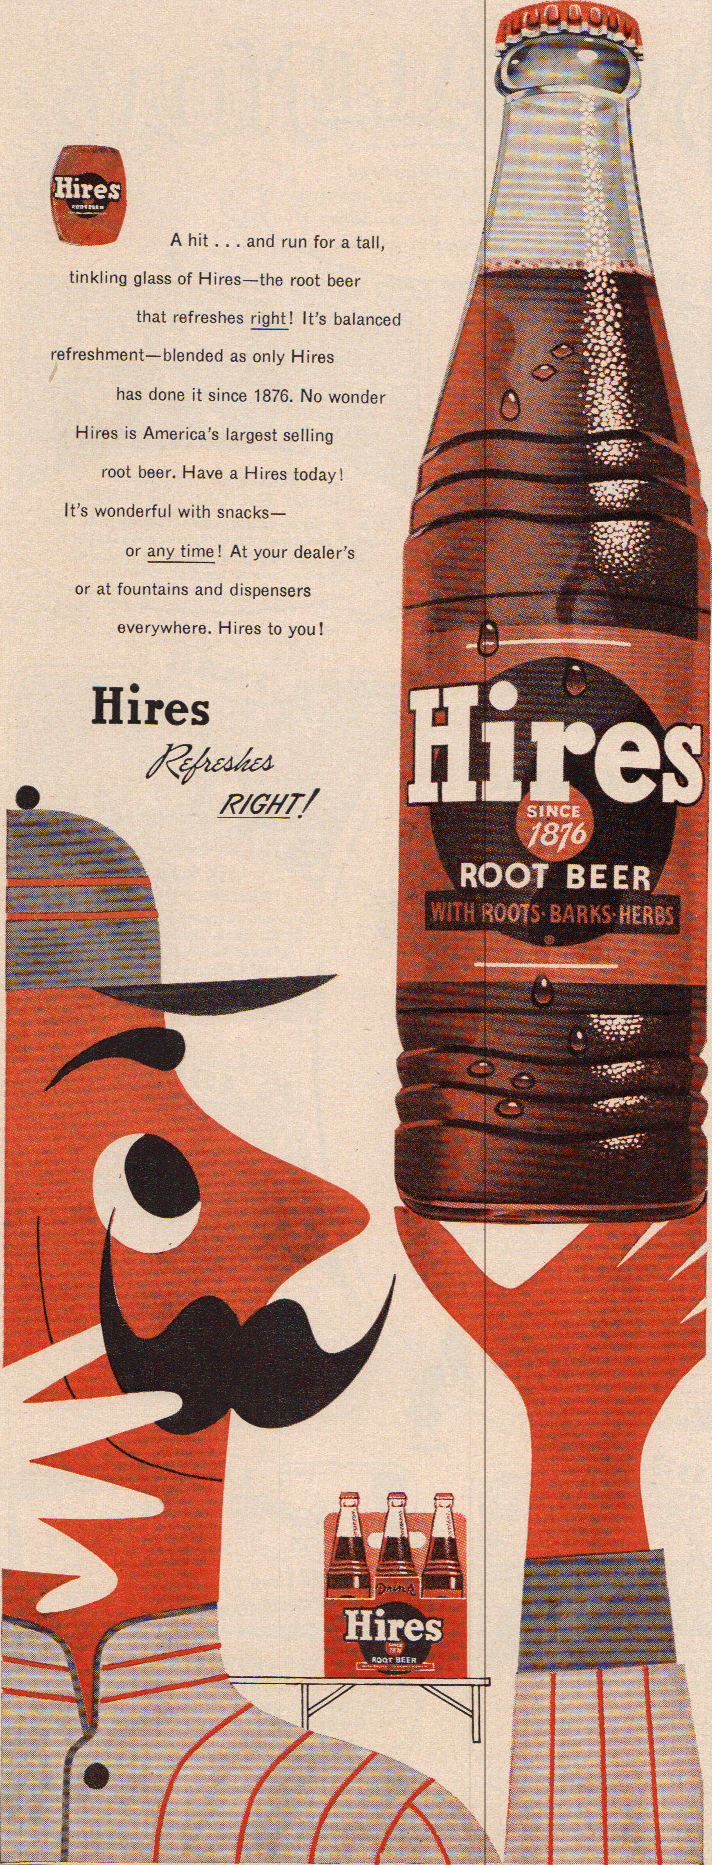 Killing A Product – The Demise of Hires Root Beer